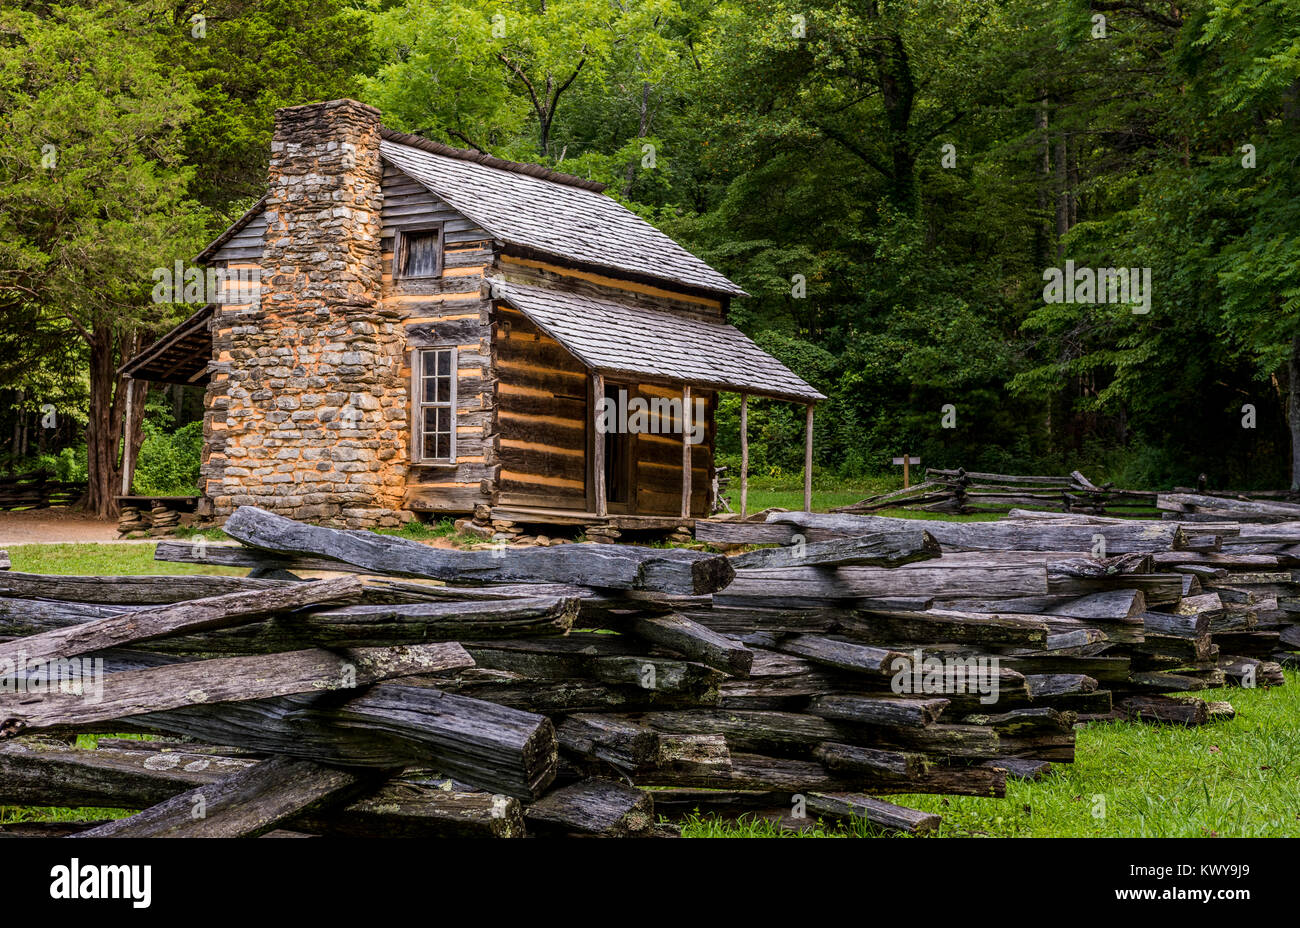 John Oliver cabin in Cades Cove, Great Smoky Mountains National Park. - Stock Image